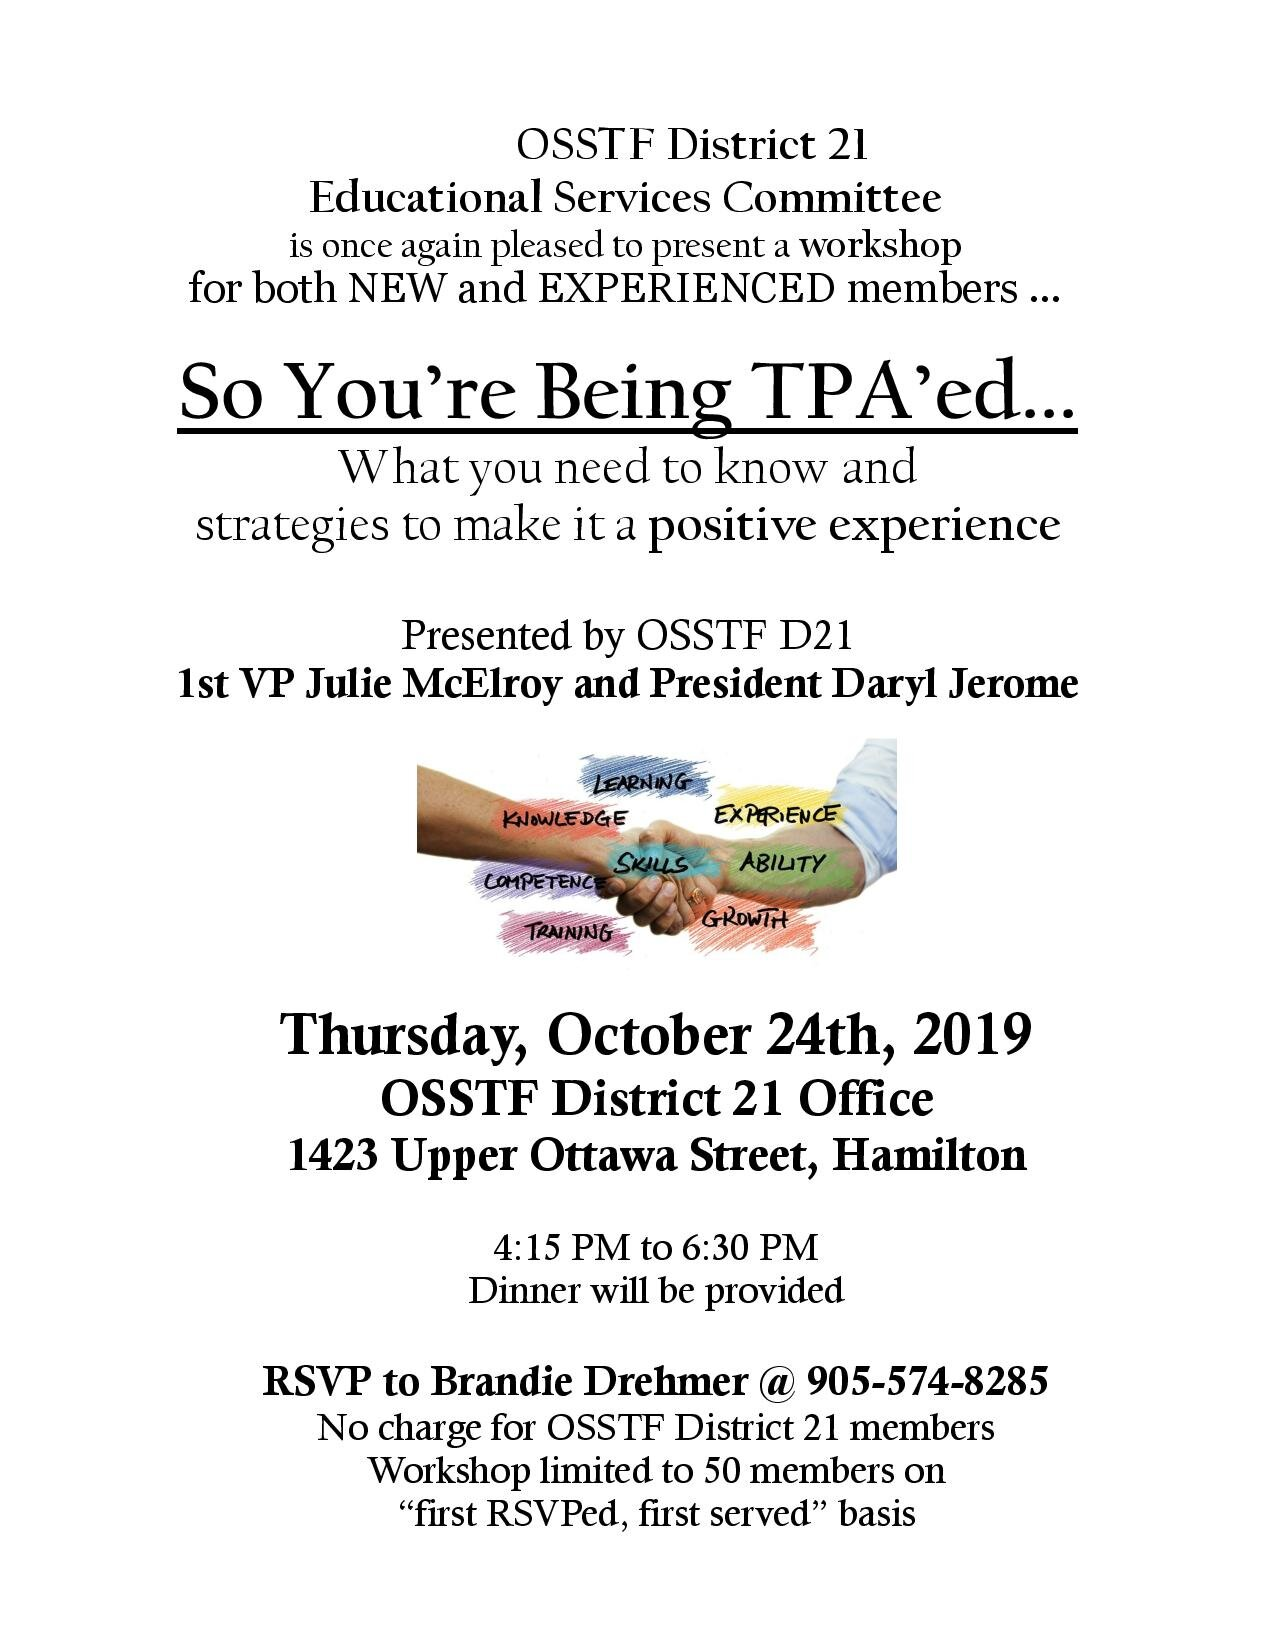 ESC TPA Workshop Flyer-October 24th, 2019-page-001.jpg